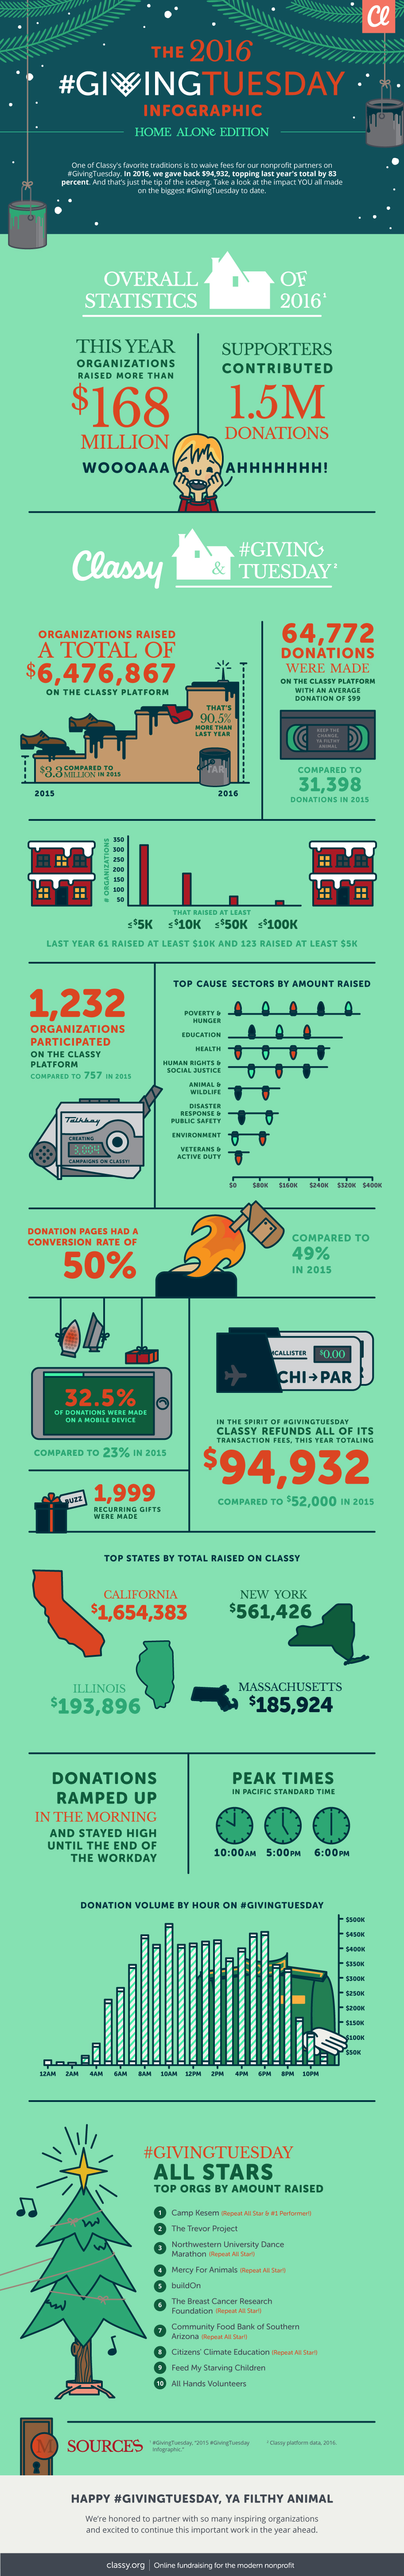 INFOGRAPHIC GivingTuesday Keeps Getting Better Giving